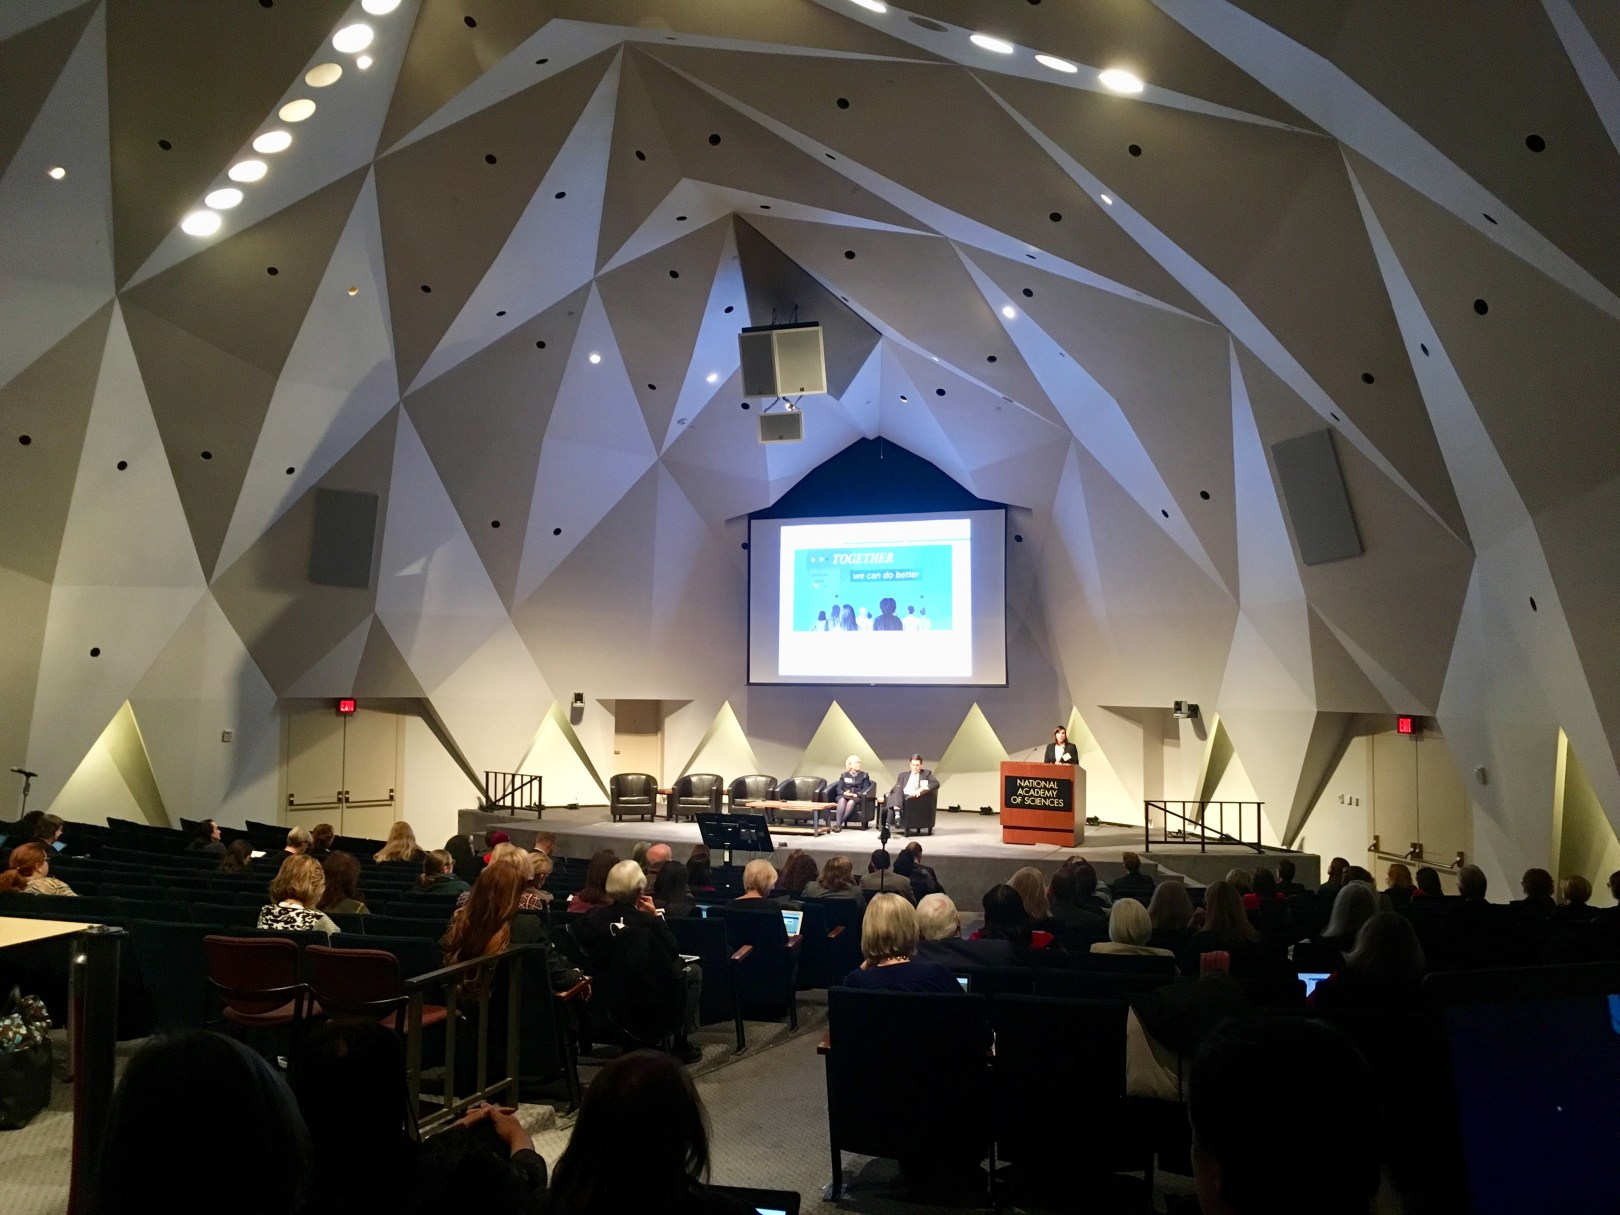 People fill a modern-looking auditorium. There are three people on stage, two seated and one at a podium, and a title slide of a presentation is displayed on a large screen.